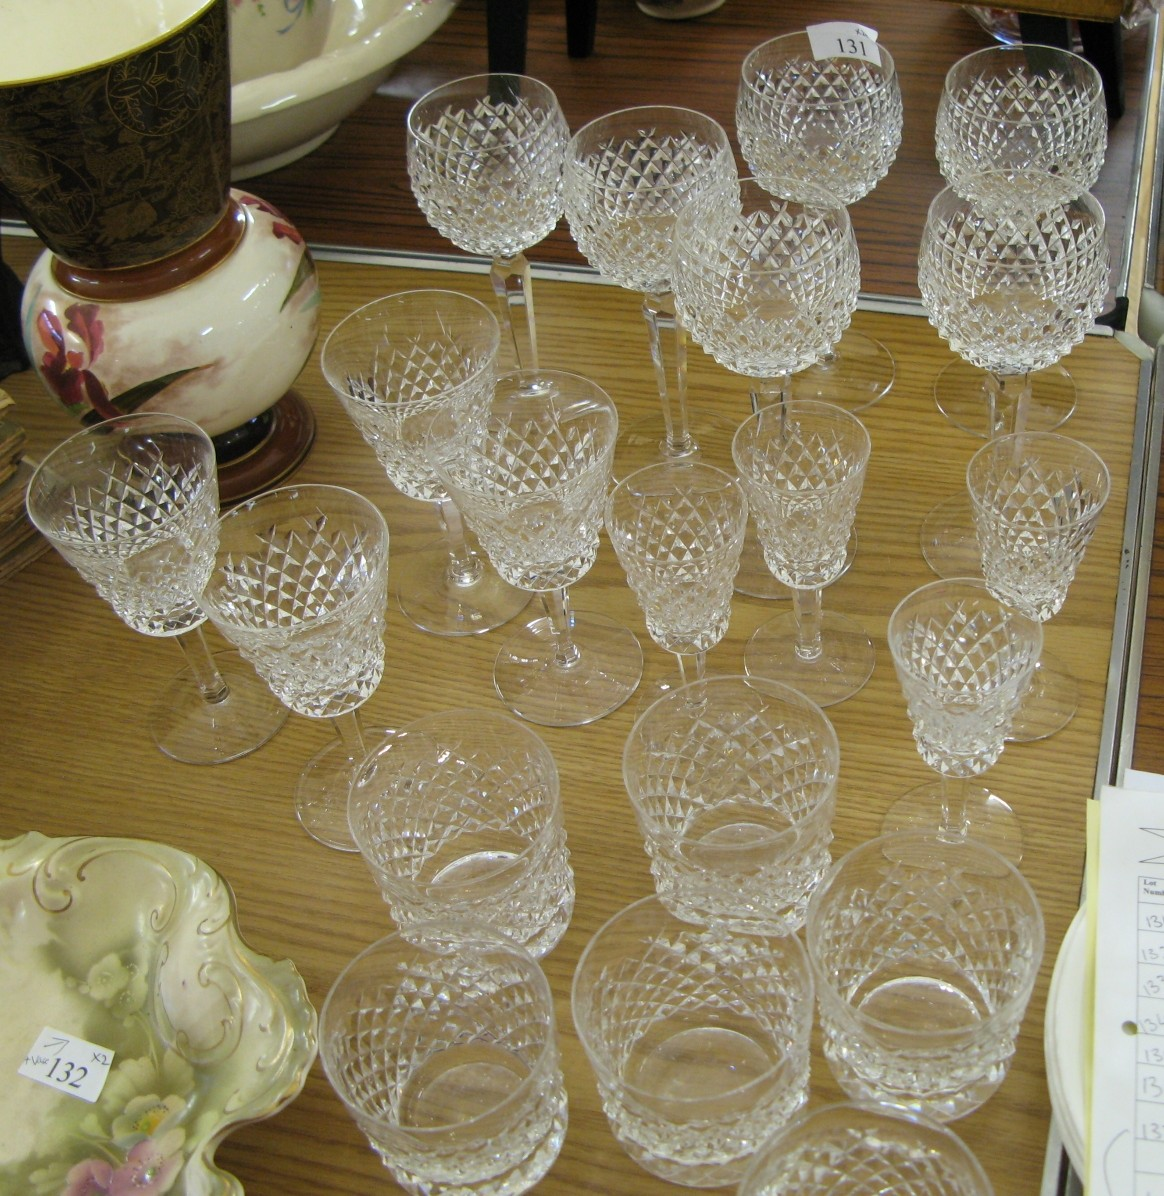 Collection of cut glass glasses - Sold for £135